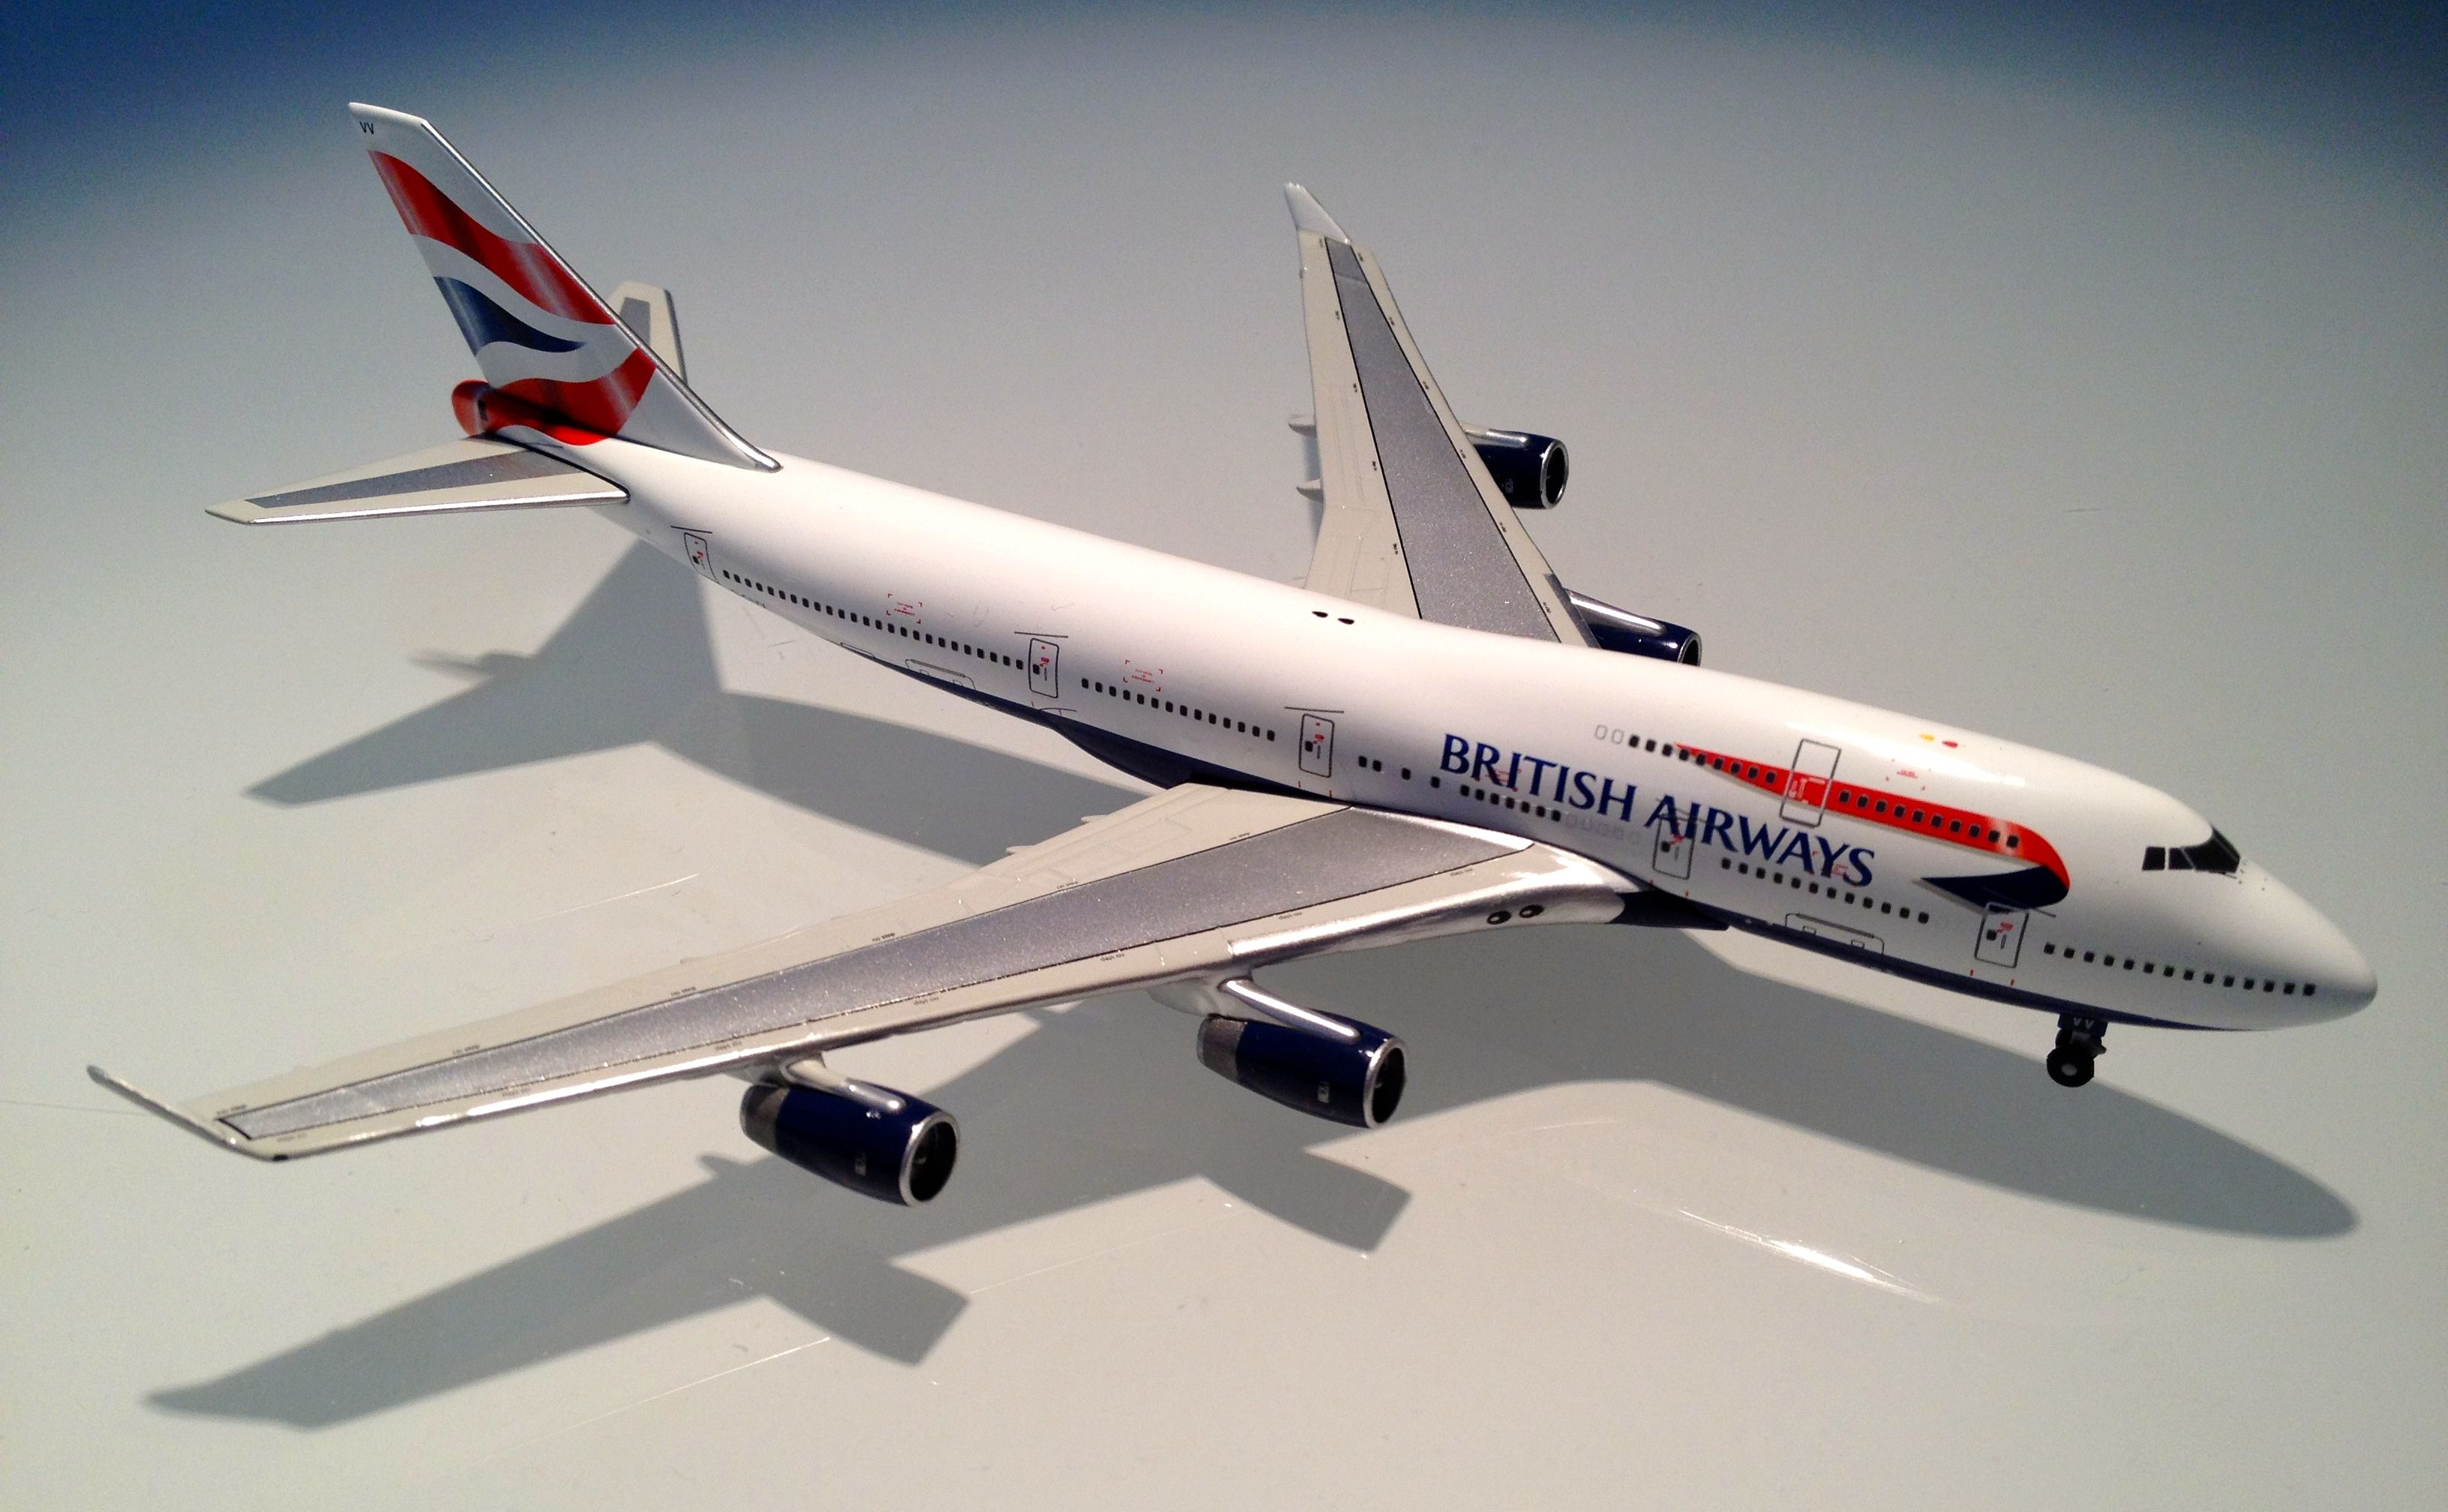 6aa81e299d55 British Airways Boeing 747-400 - Harrods of London - Scenes of London  Collectible - Die Cast Model - 1 500 Scale